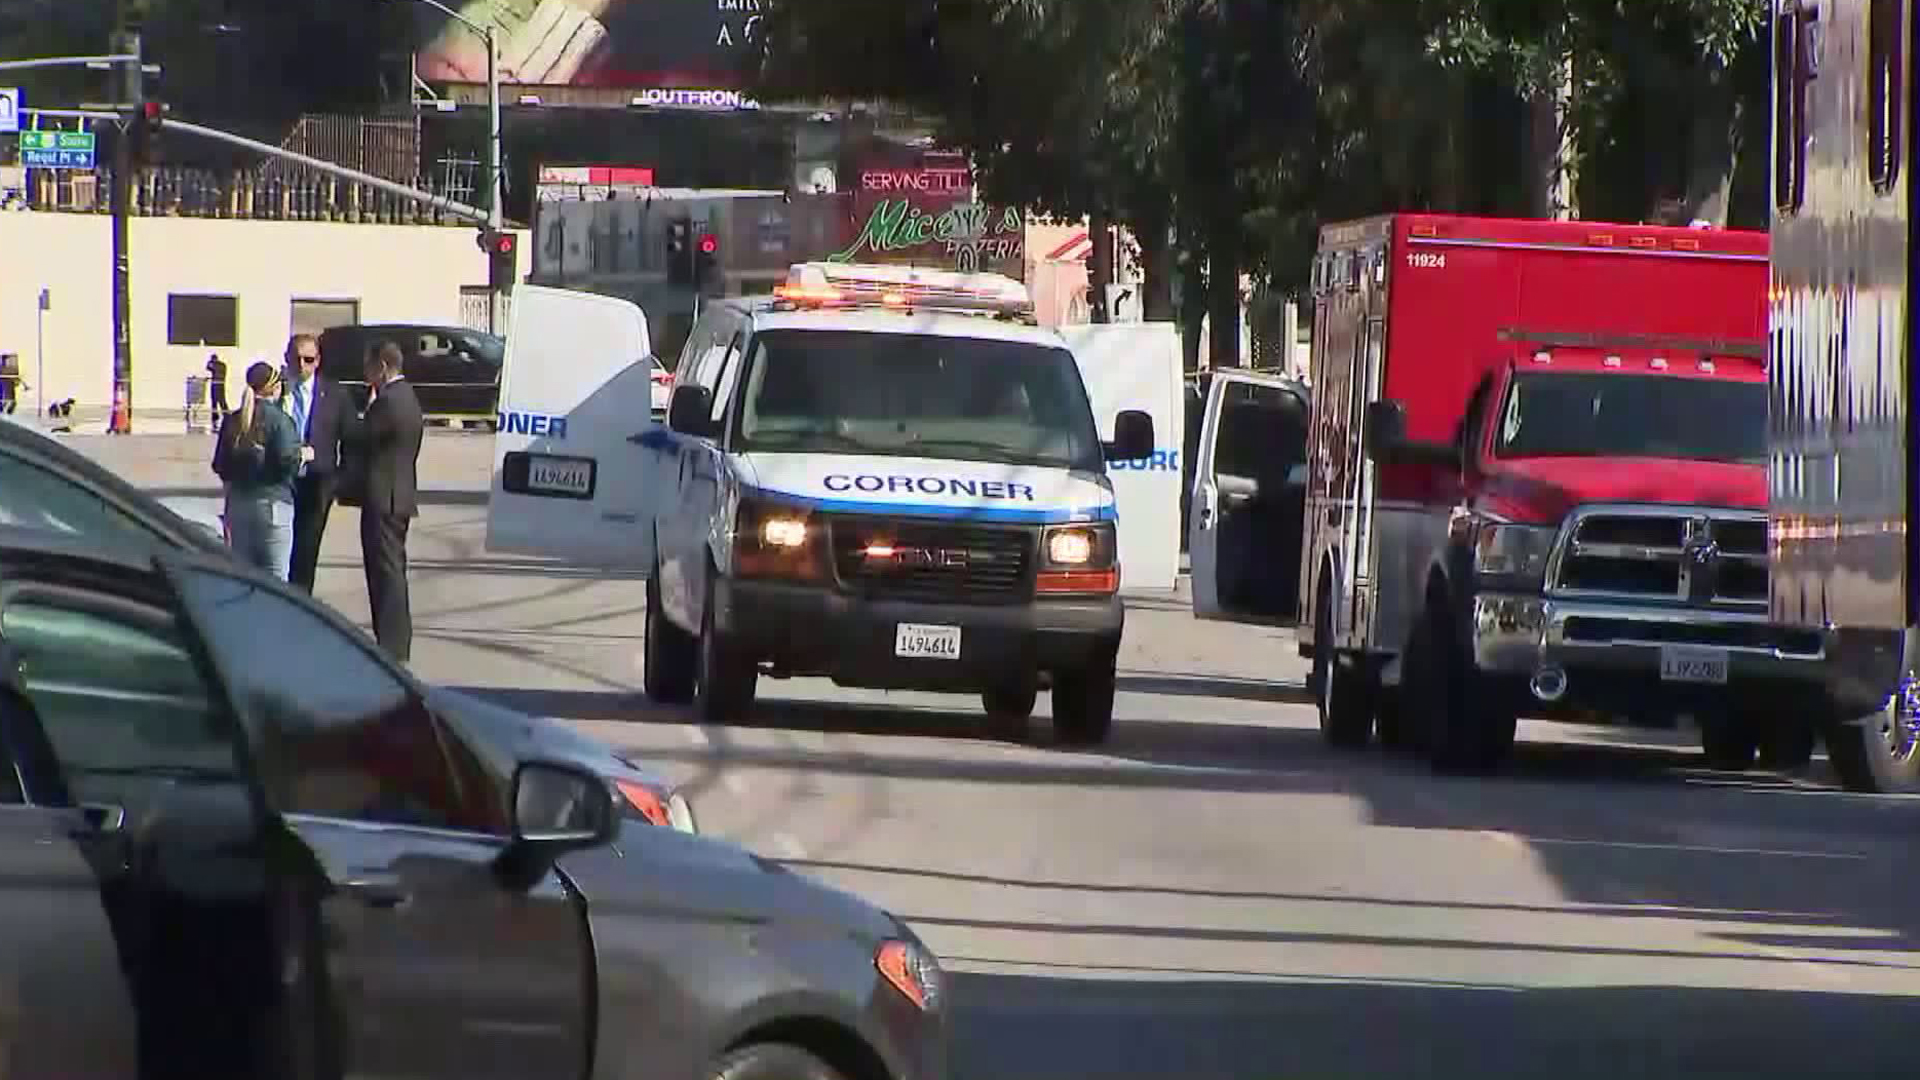 A coroner's van arrives at the scene of a fire that left two dead in Studio City on April 14, 2018. (Credit: KTLA)